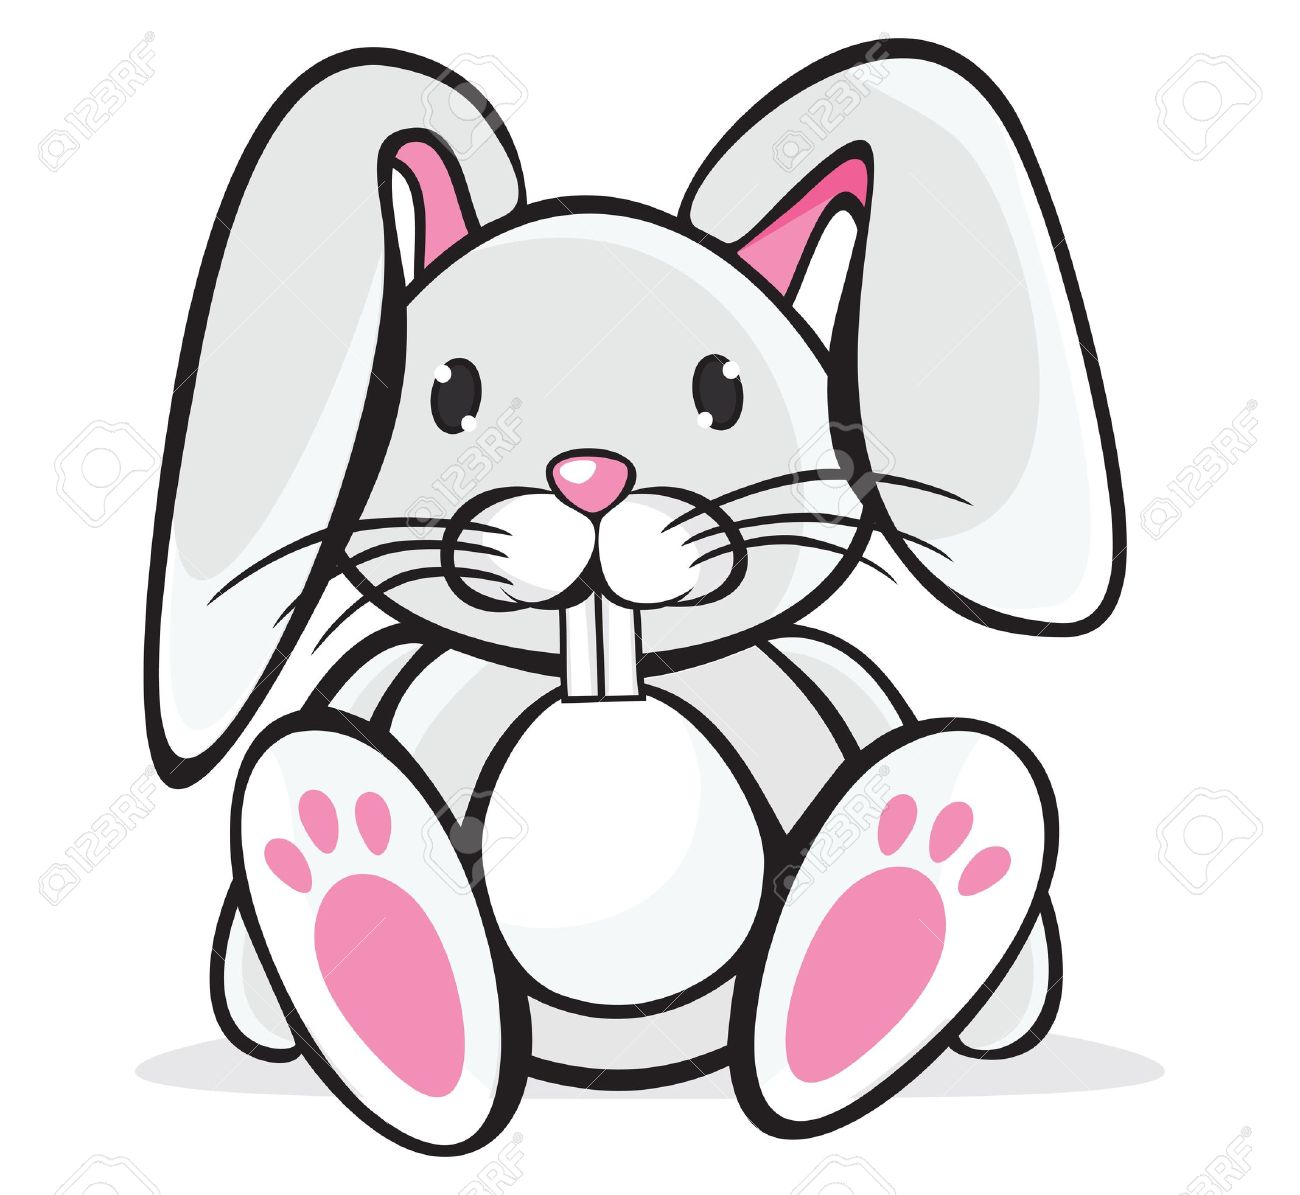 cute rabbit royalty free cliparts vectors and stock illustration rh 123rf com cute bunny clipart images cute bunny clipart black and white